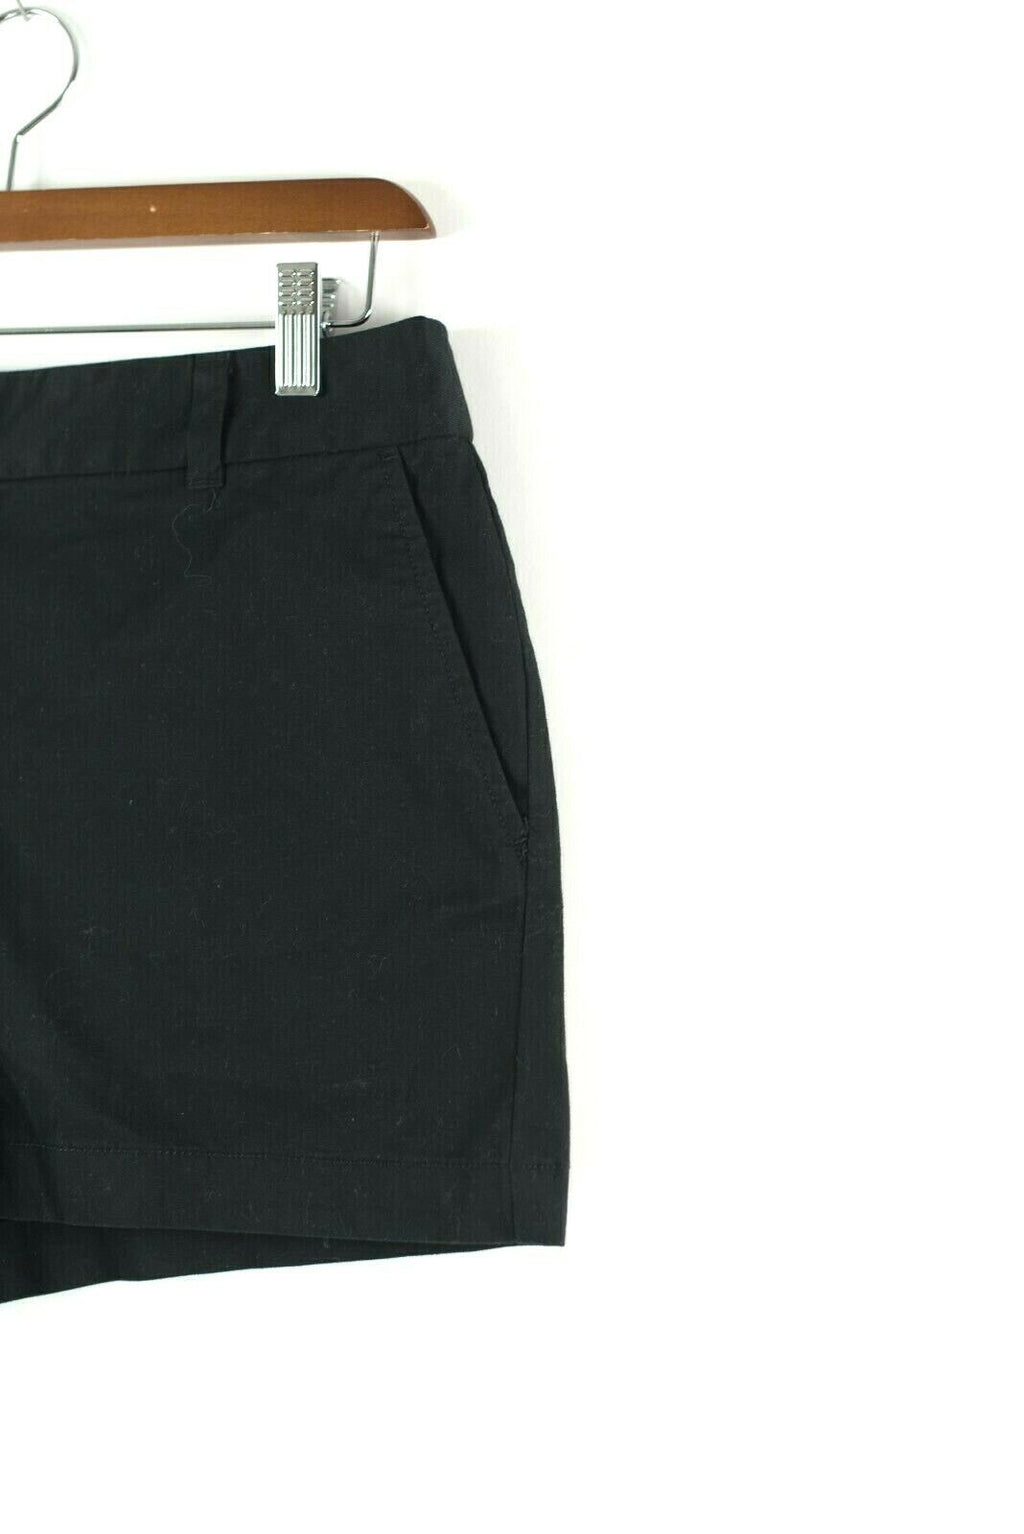 Loft Ann Taylor Womens Size 4 Small Black Shorts Original Solid Mini Cotton NWT